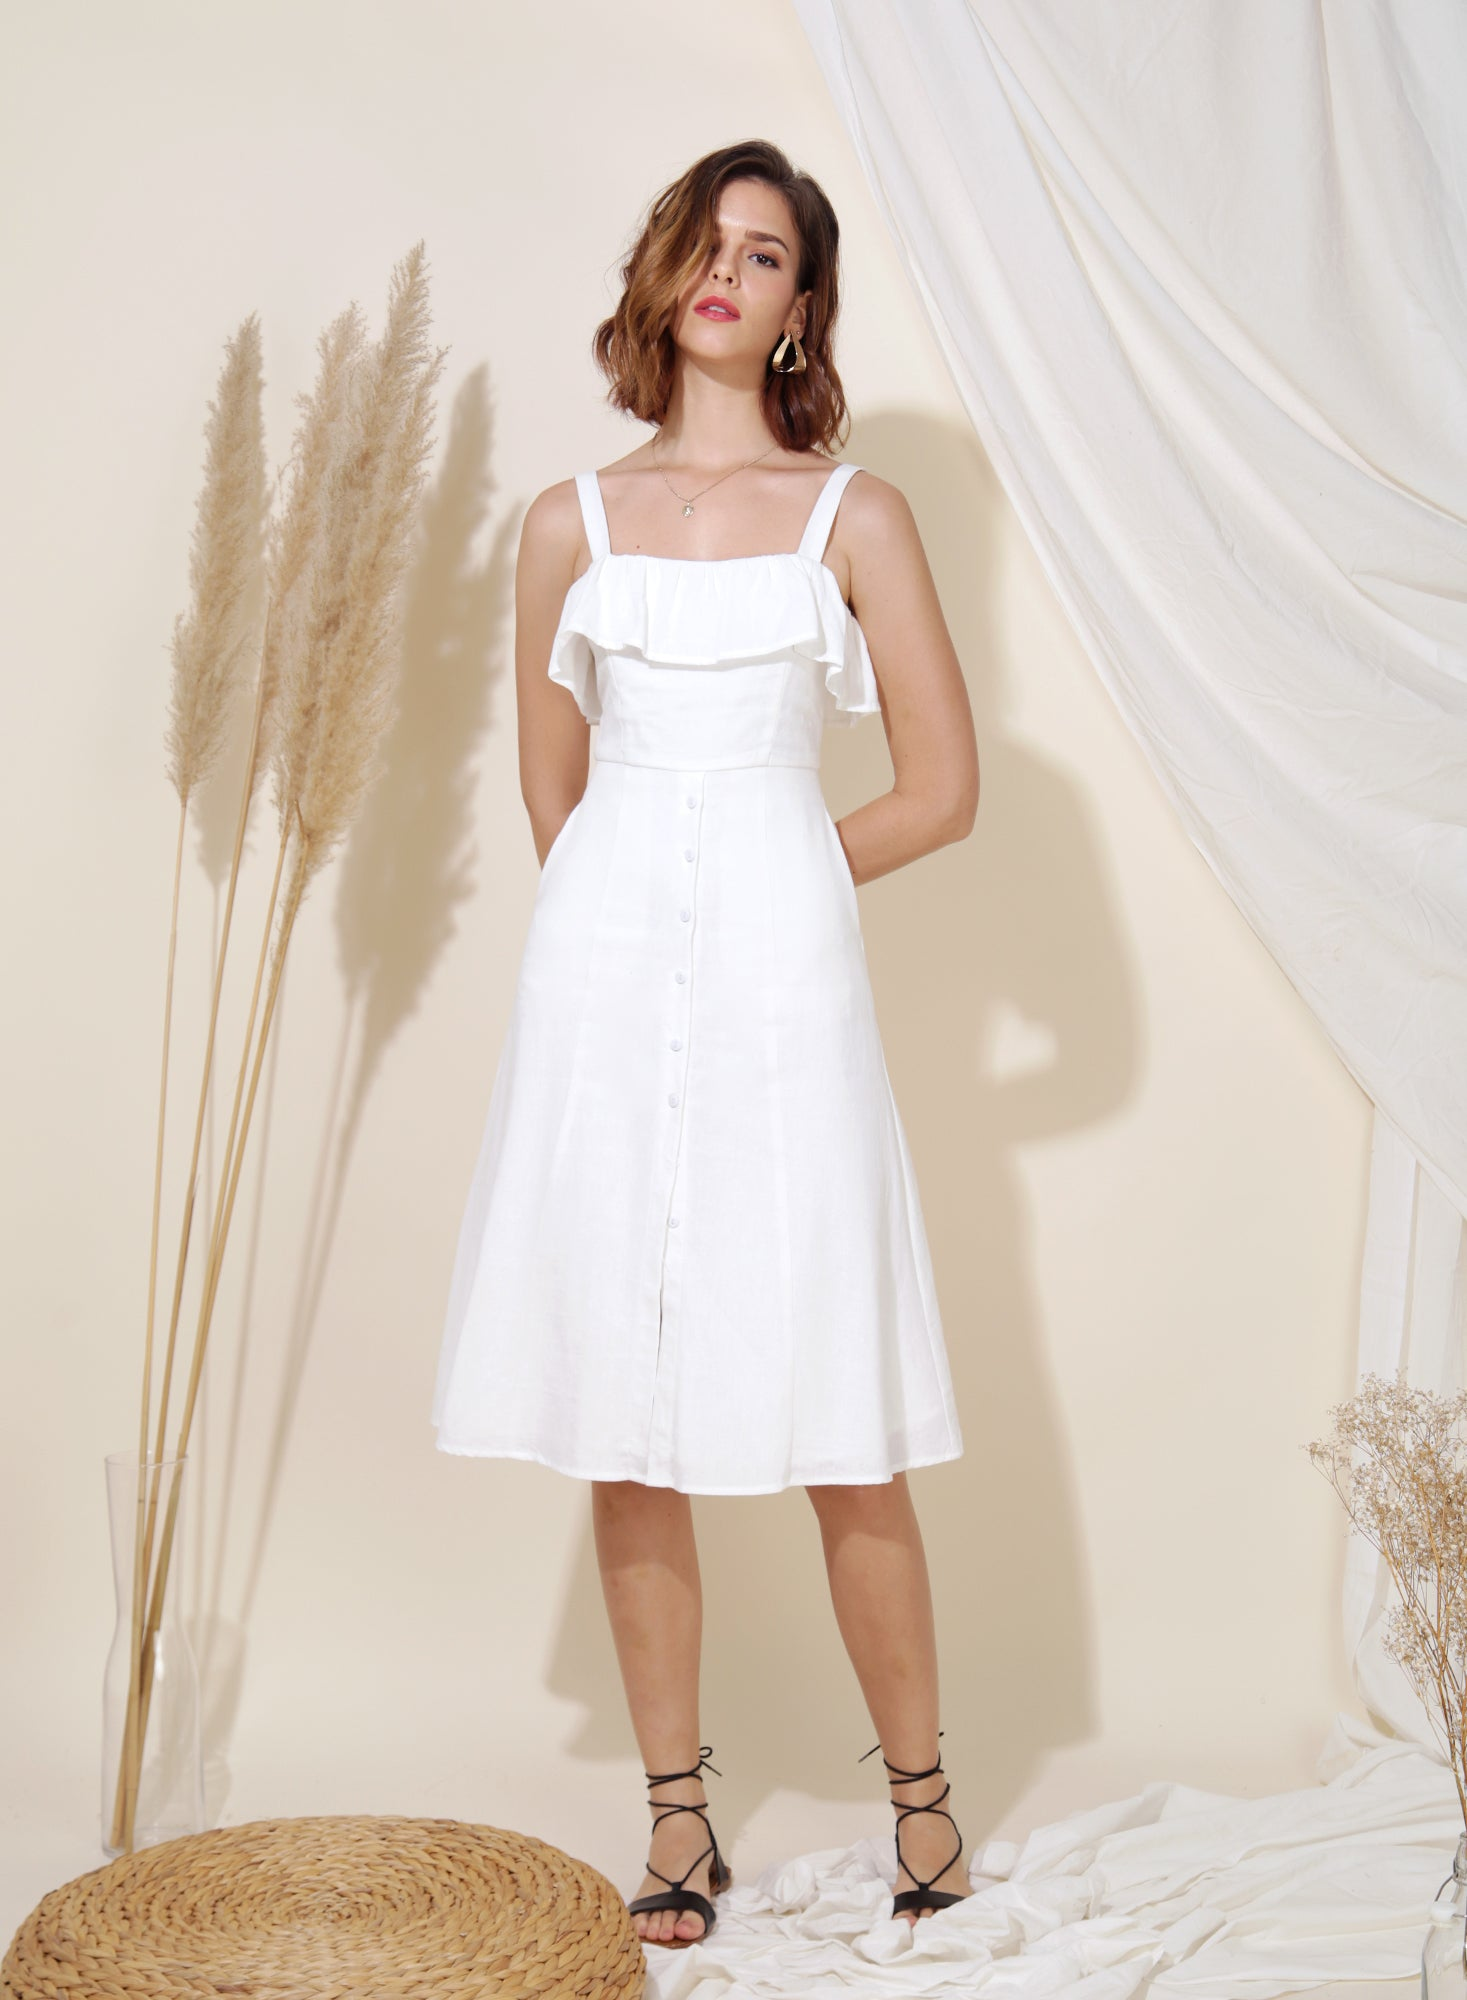 Eternal Ruffle Tier Midi Dress (White) at $ 43.50 only sold at And Well Dressed Online Fashion Store Singapore